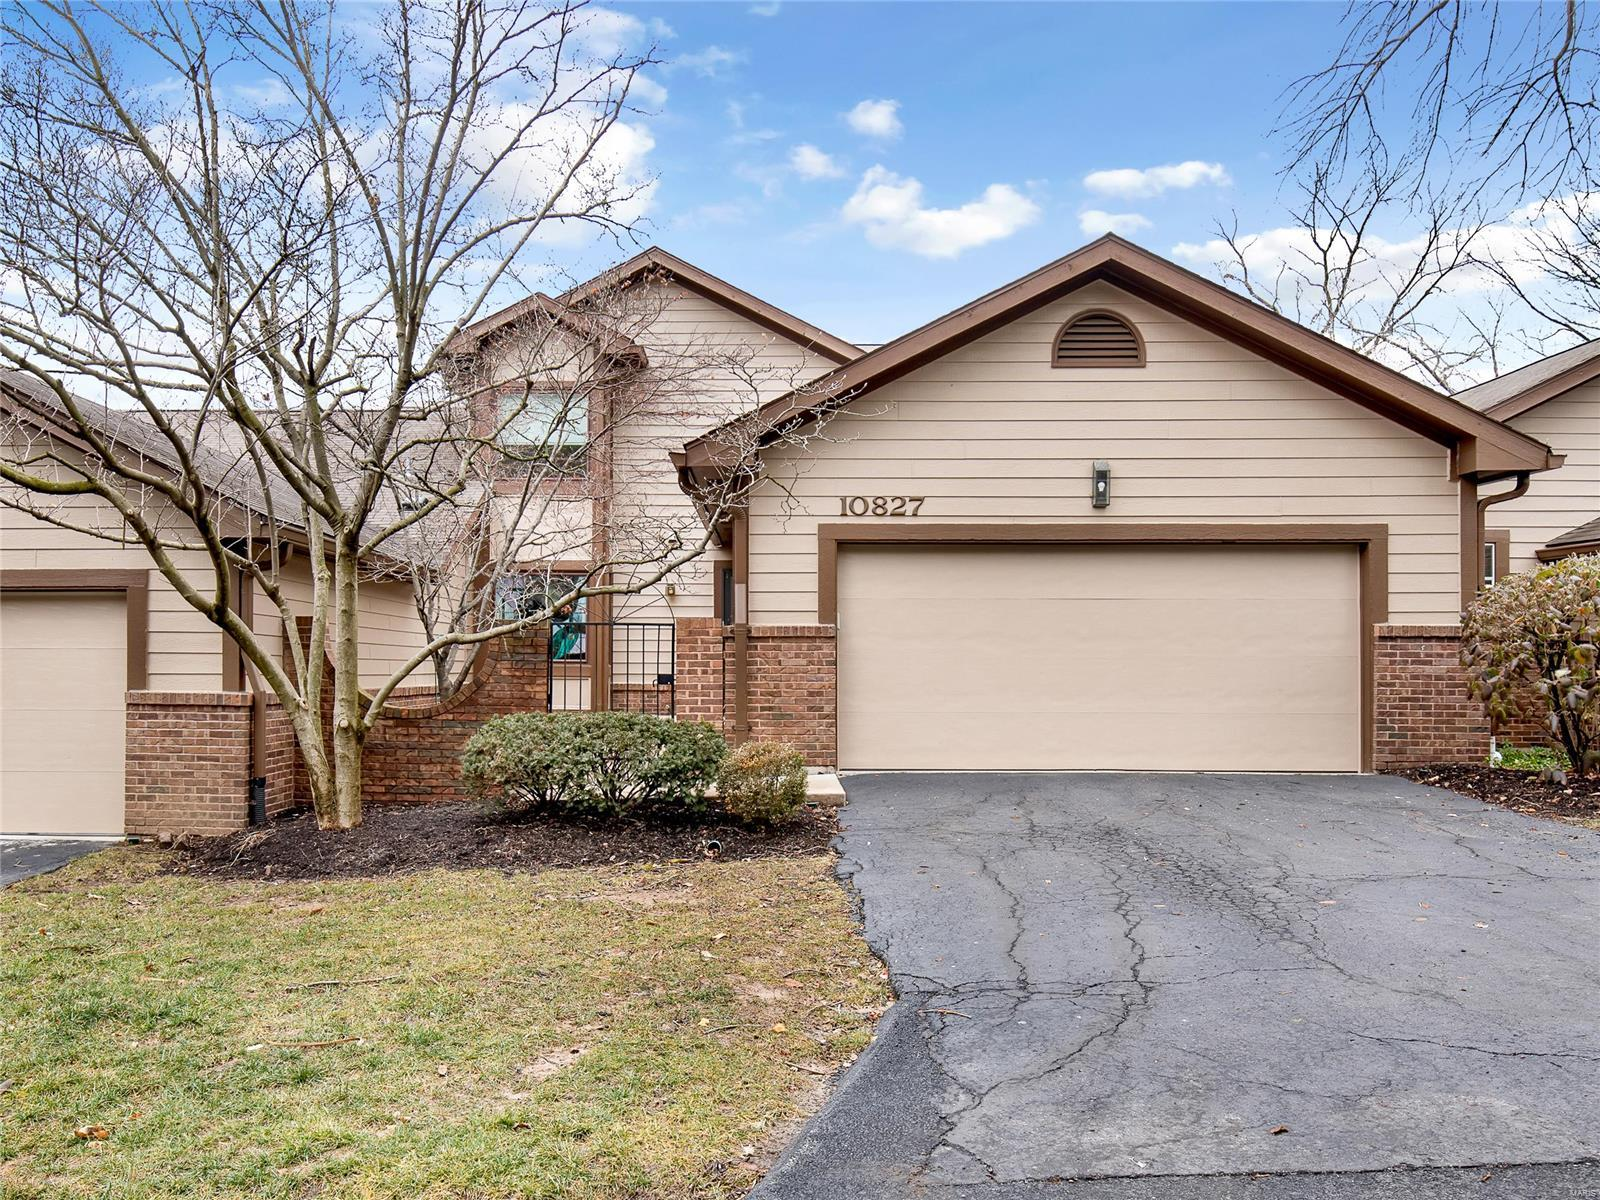 10827 Picadily Square Drive Property Photo - Creve Coeur, MO real estate listing